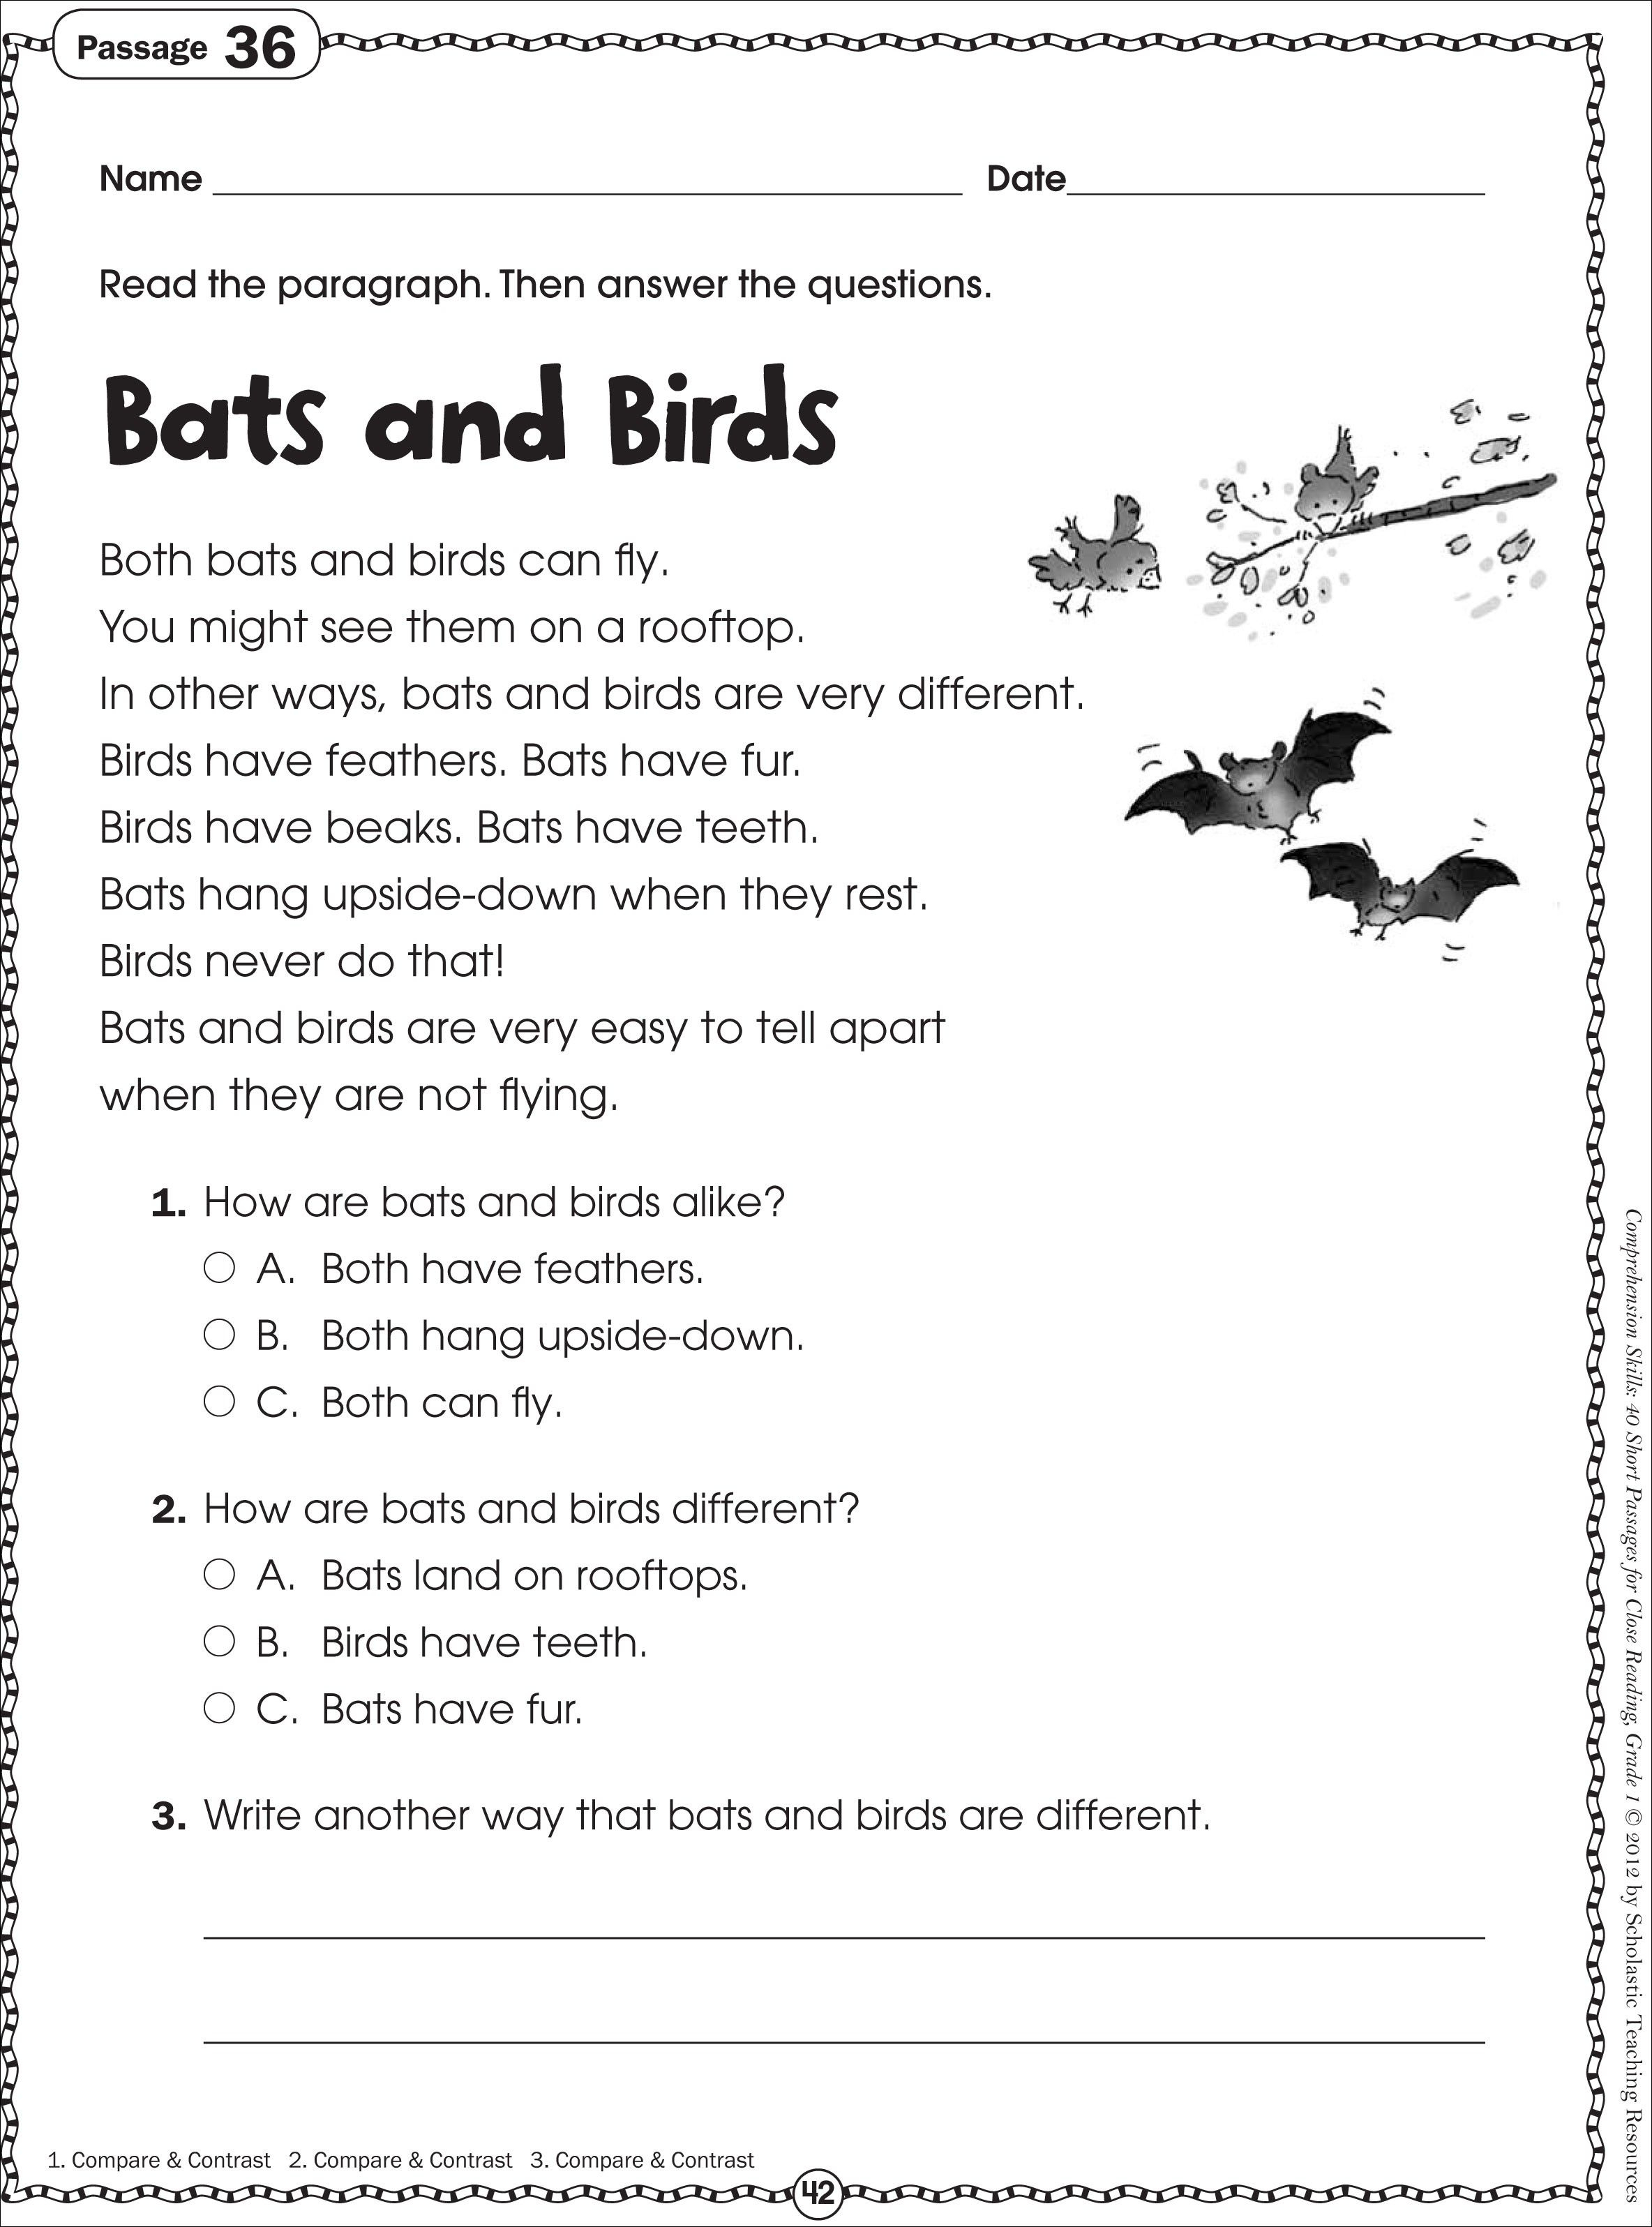 Free Printable Reading Comprehension Worksheets For Kindergarten - Free Printable Reading Comprehension Worksheets For Adults